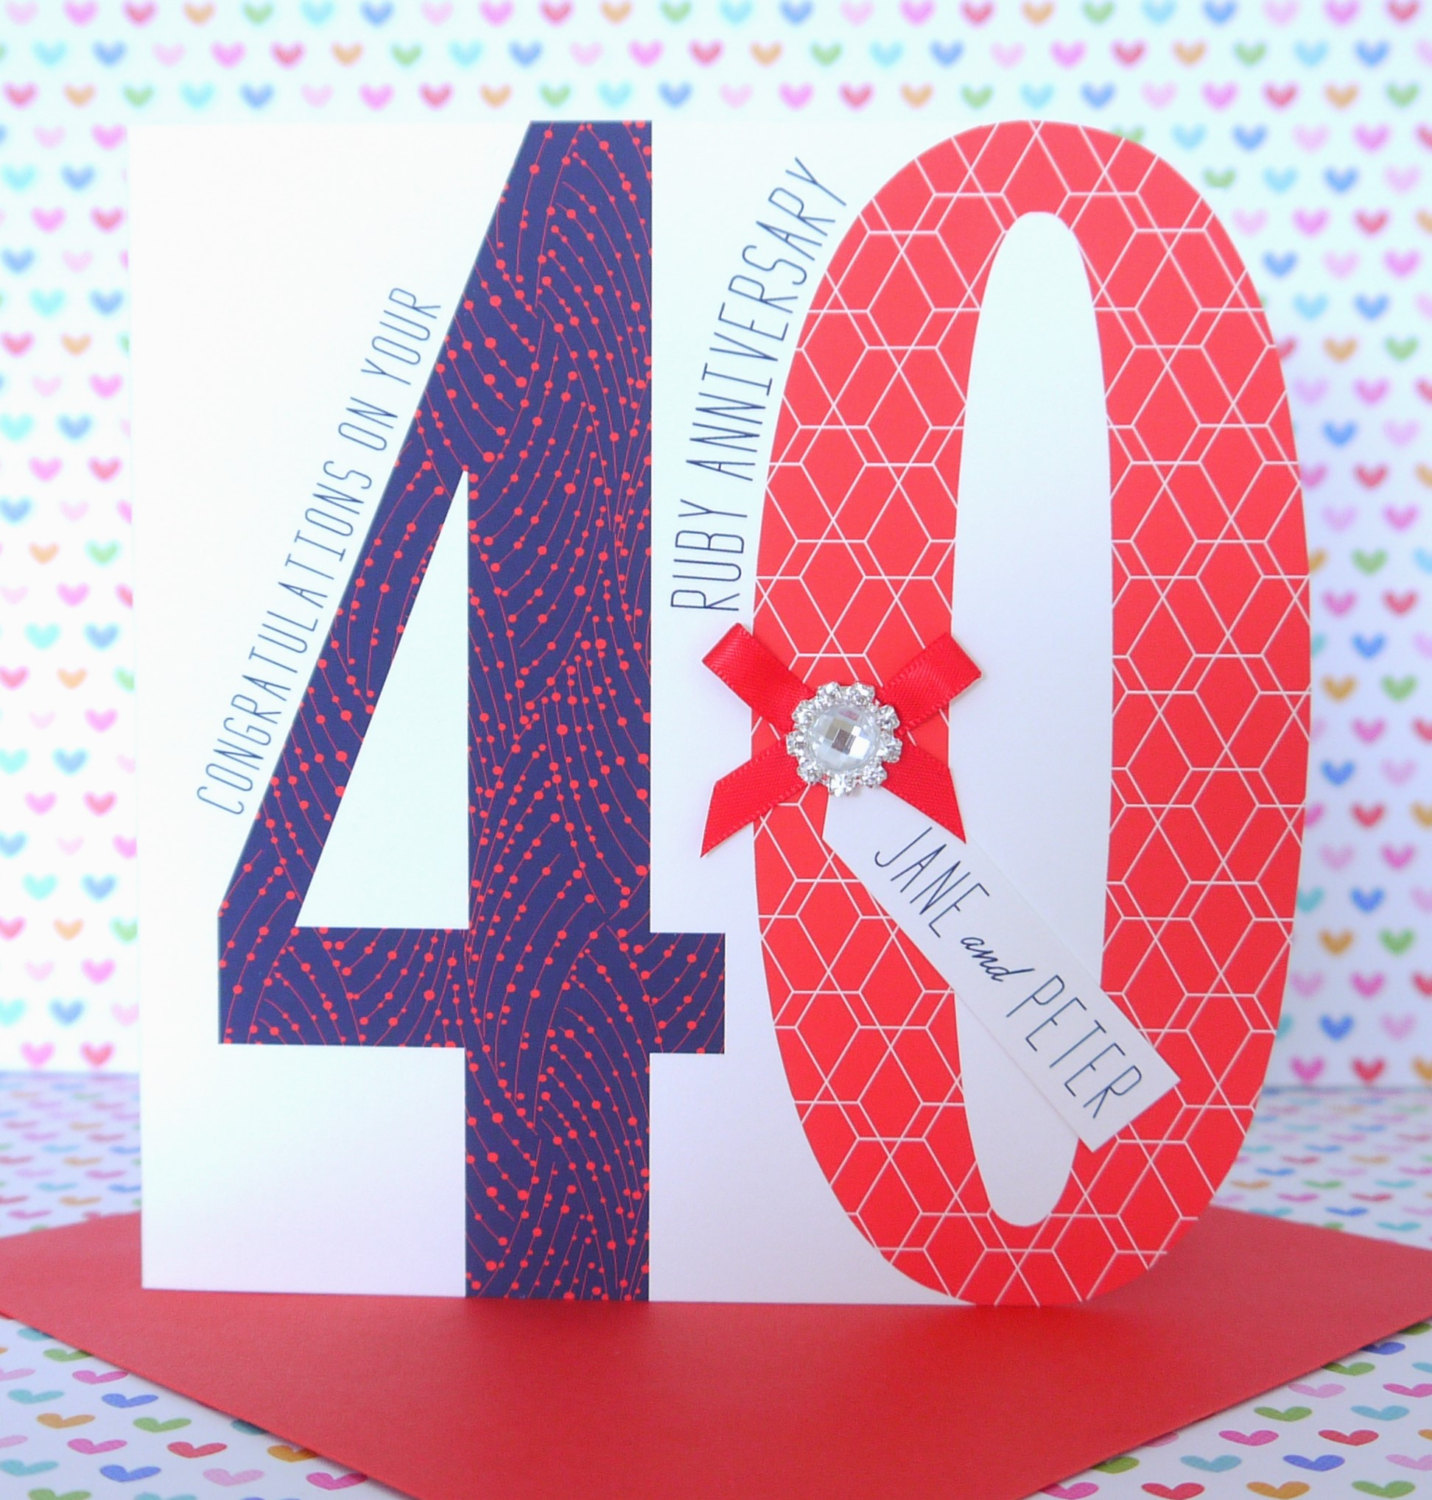 40th Wedding Anniversary.Lovely Personalised Handmade Ruby 40th Wedding Anniversary Card